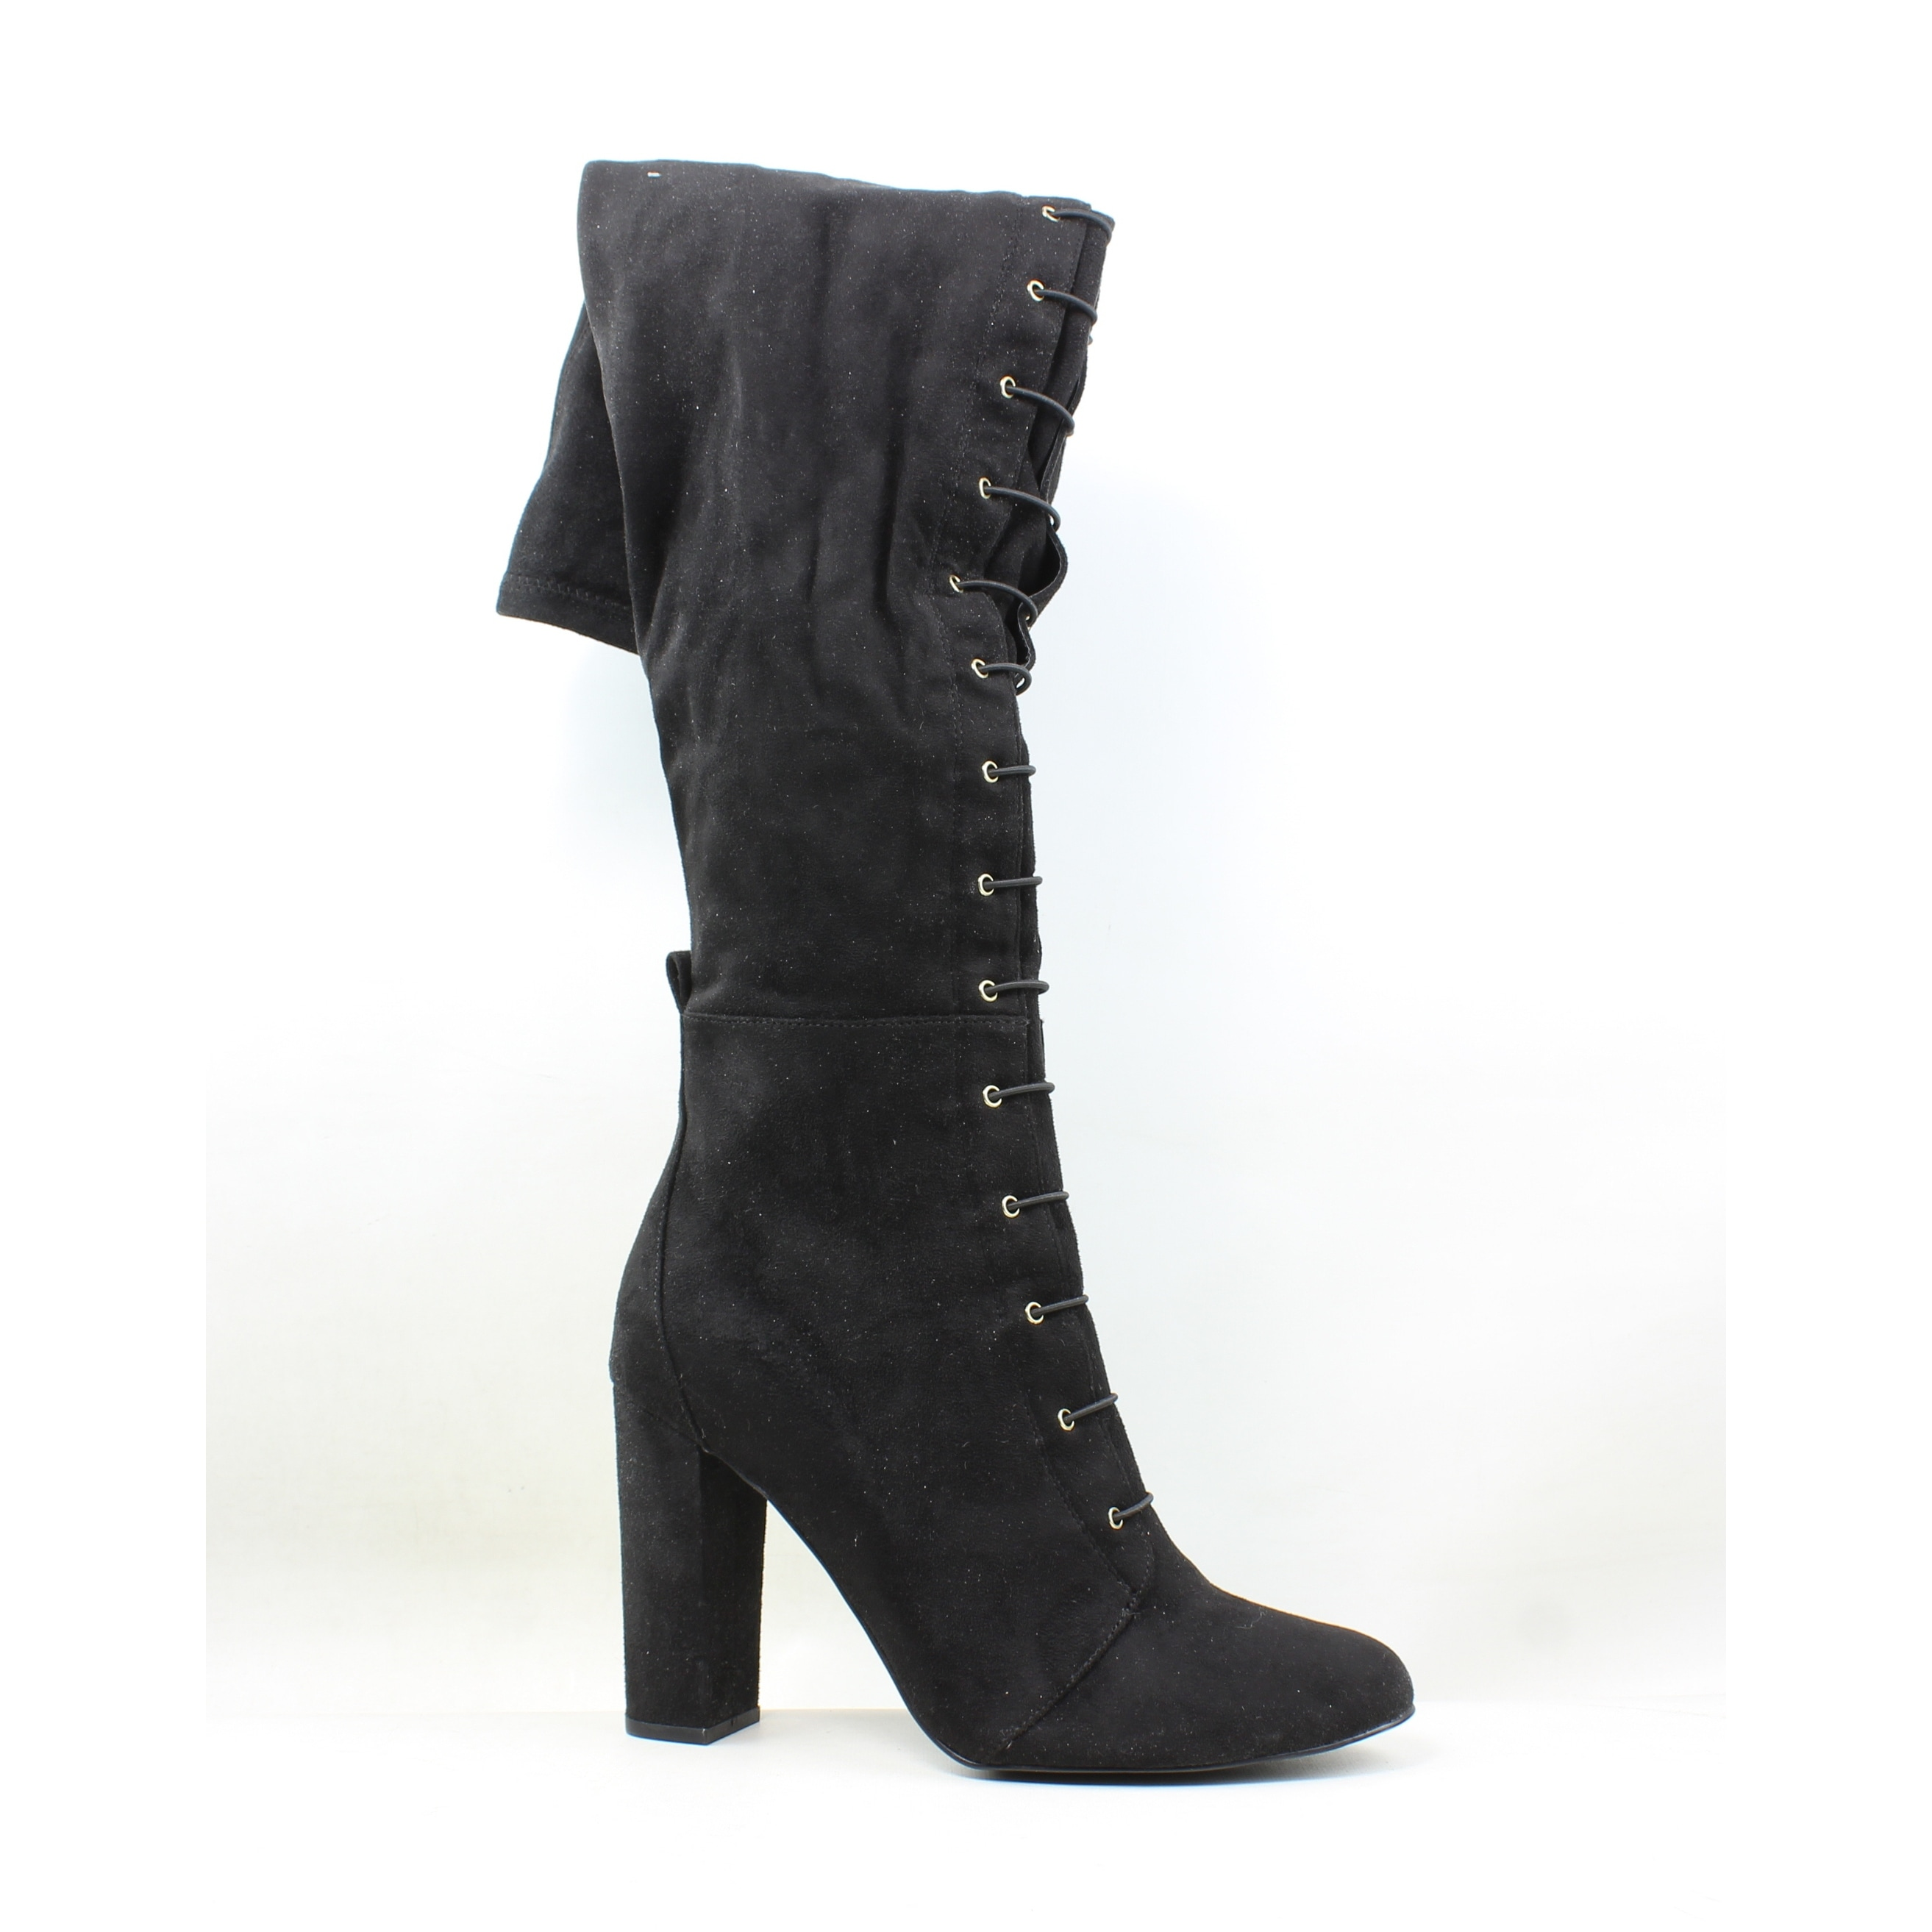 c6bec51bfba Buy Black Chinese Laundry Women s Boots Online at Overstock